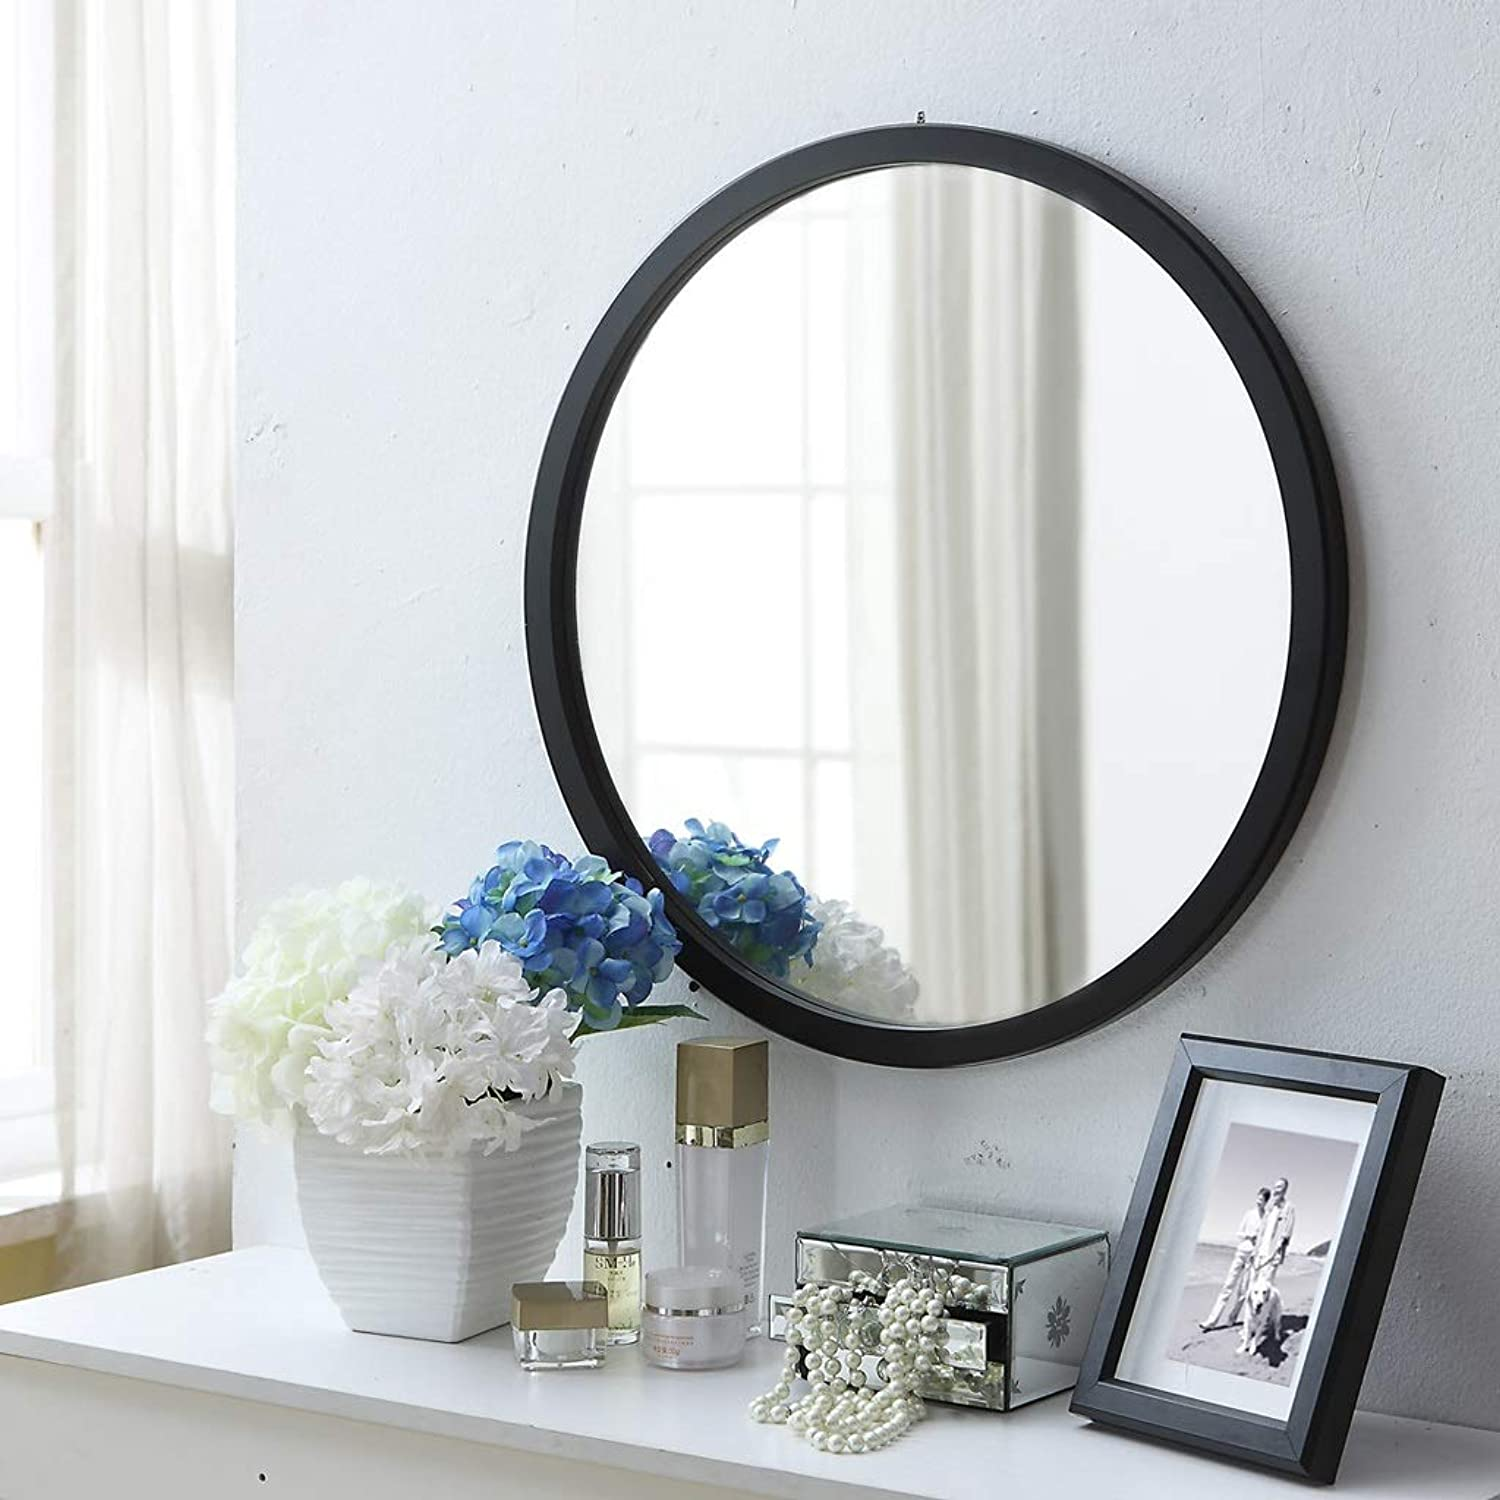 GSHWJS Mirror Wall Mirror and Wood Frame Round Wall Mirror for The Entrance Channel Bathroom Living Room and Other Modern Wall Art Doubles Wall Mirror (color   Black, Size   Diamete-60cm)